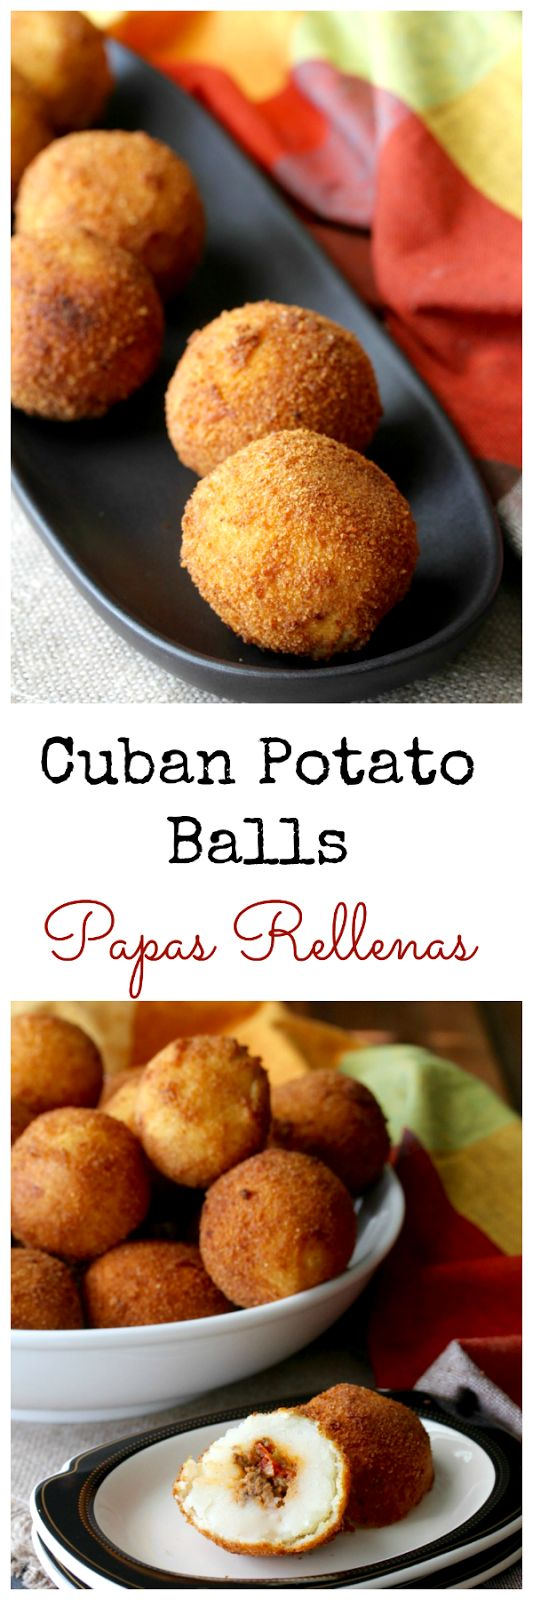 Cuban Papas Rellenas are mashed potatoes stuffed with seasoned meat, rolled into a ball, breaded, and then deep fried, resulting in these little packages of pop-able deliciousness.